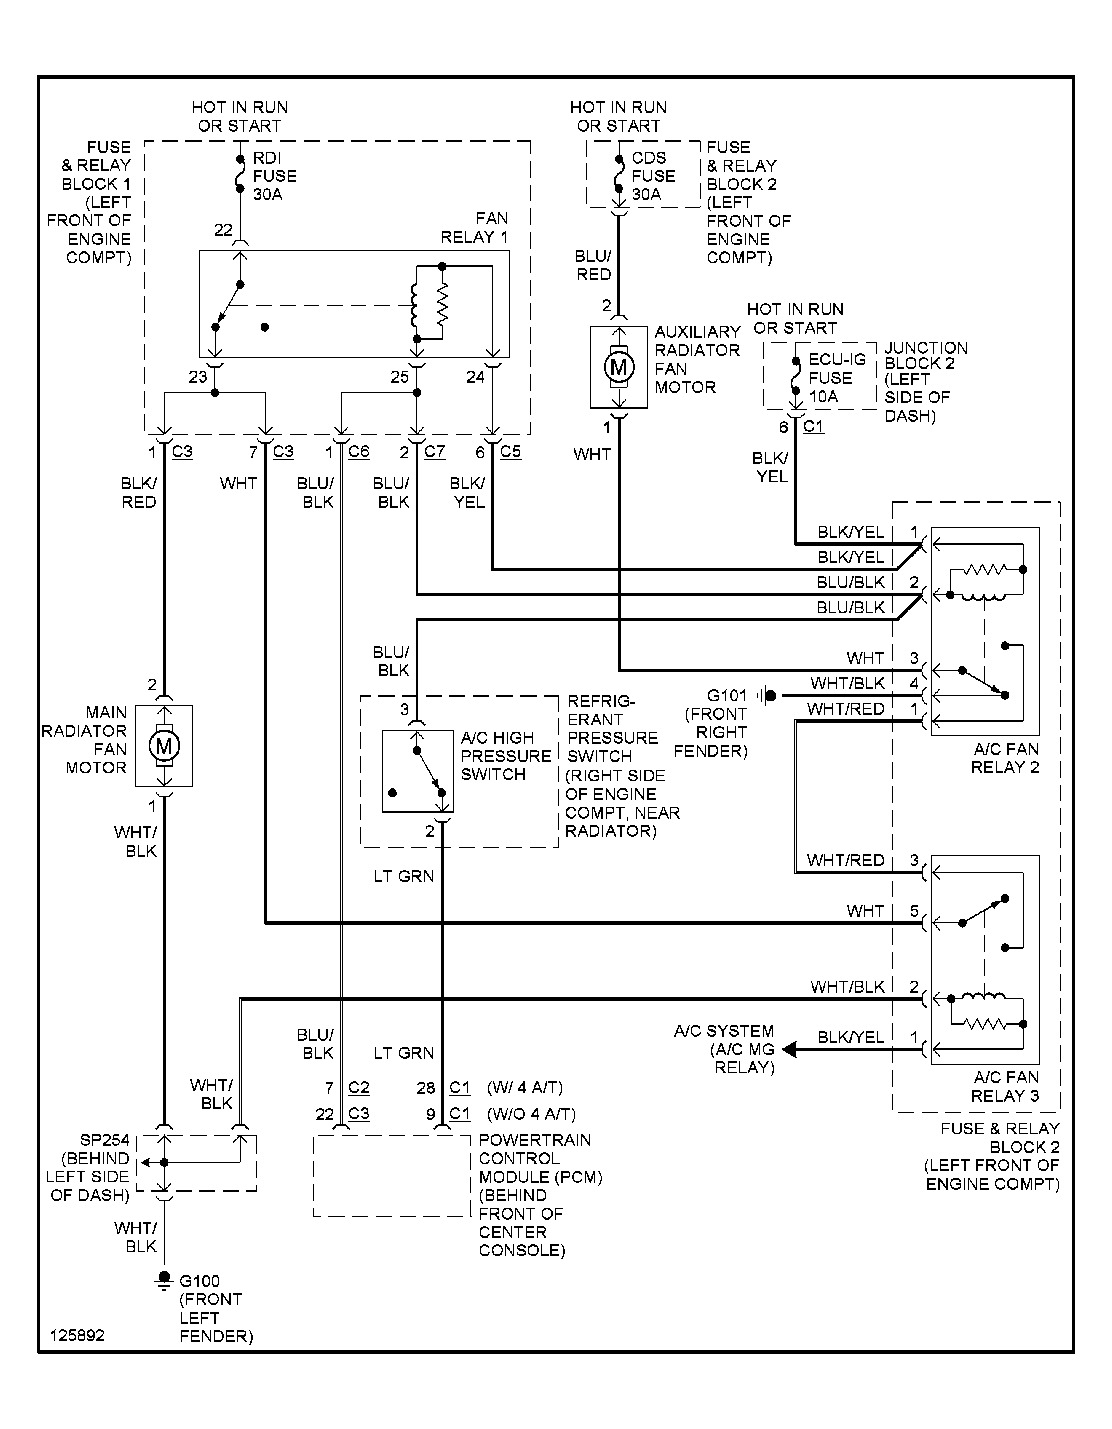 2000 chevy prizm engine diagram